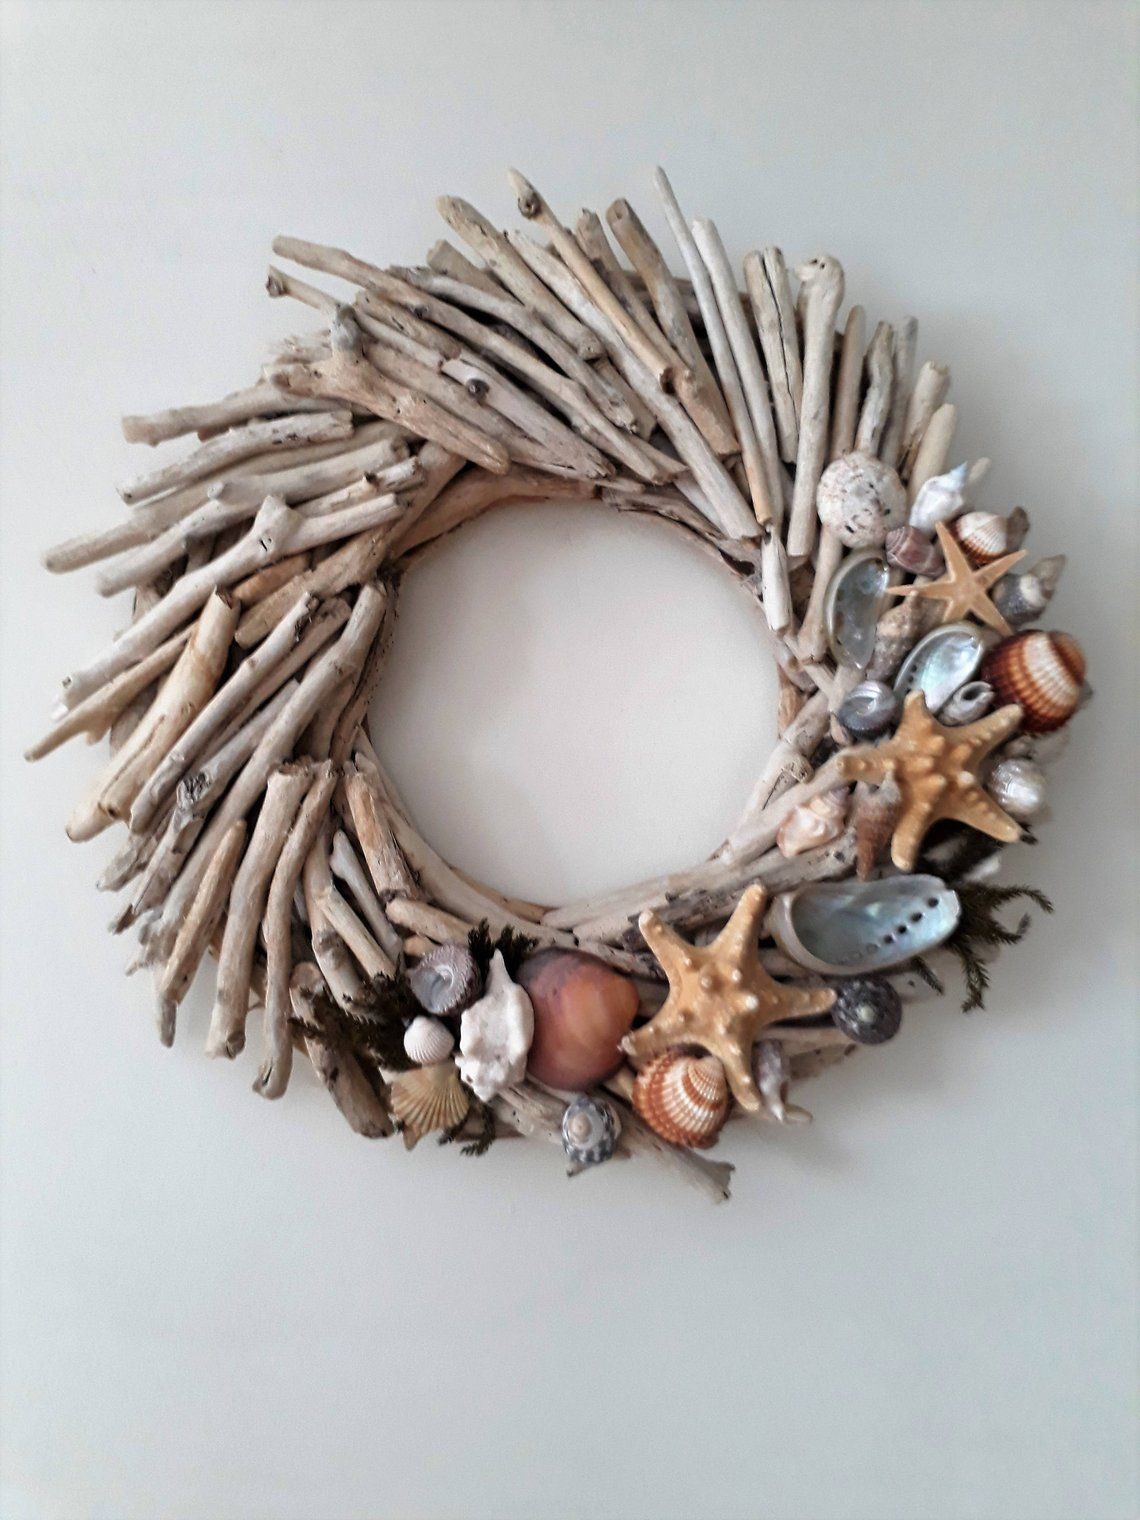 Photo of Driftwood wreath, hanging wood front door, beach decor, coast, lake, driftwood candle holder, nautical, wooden wall art, shells, cottage, rustic